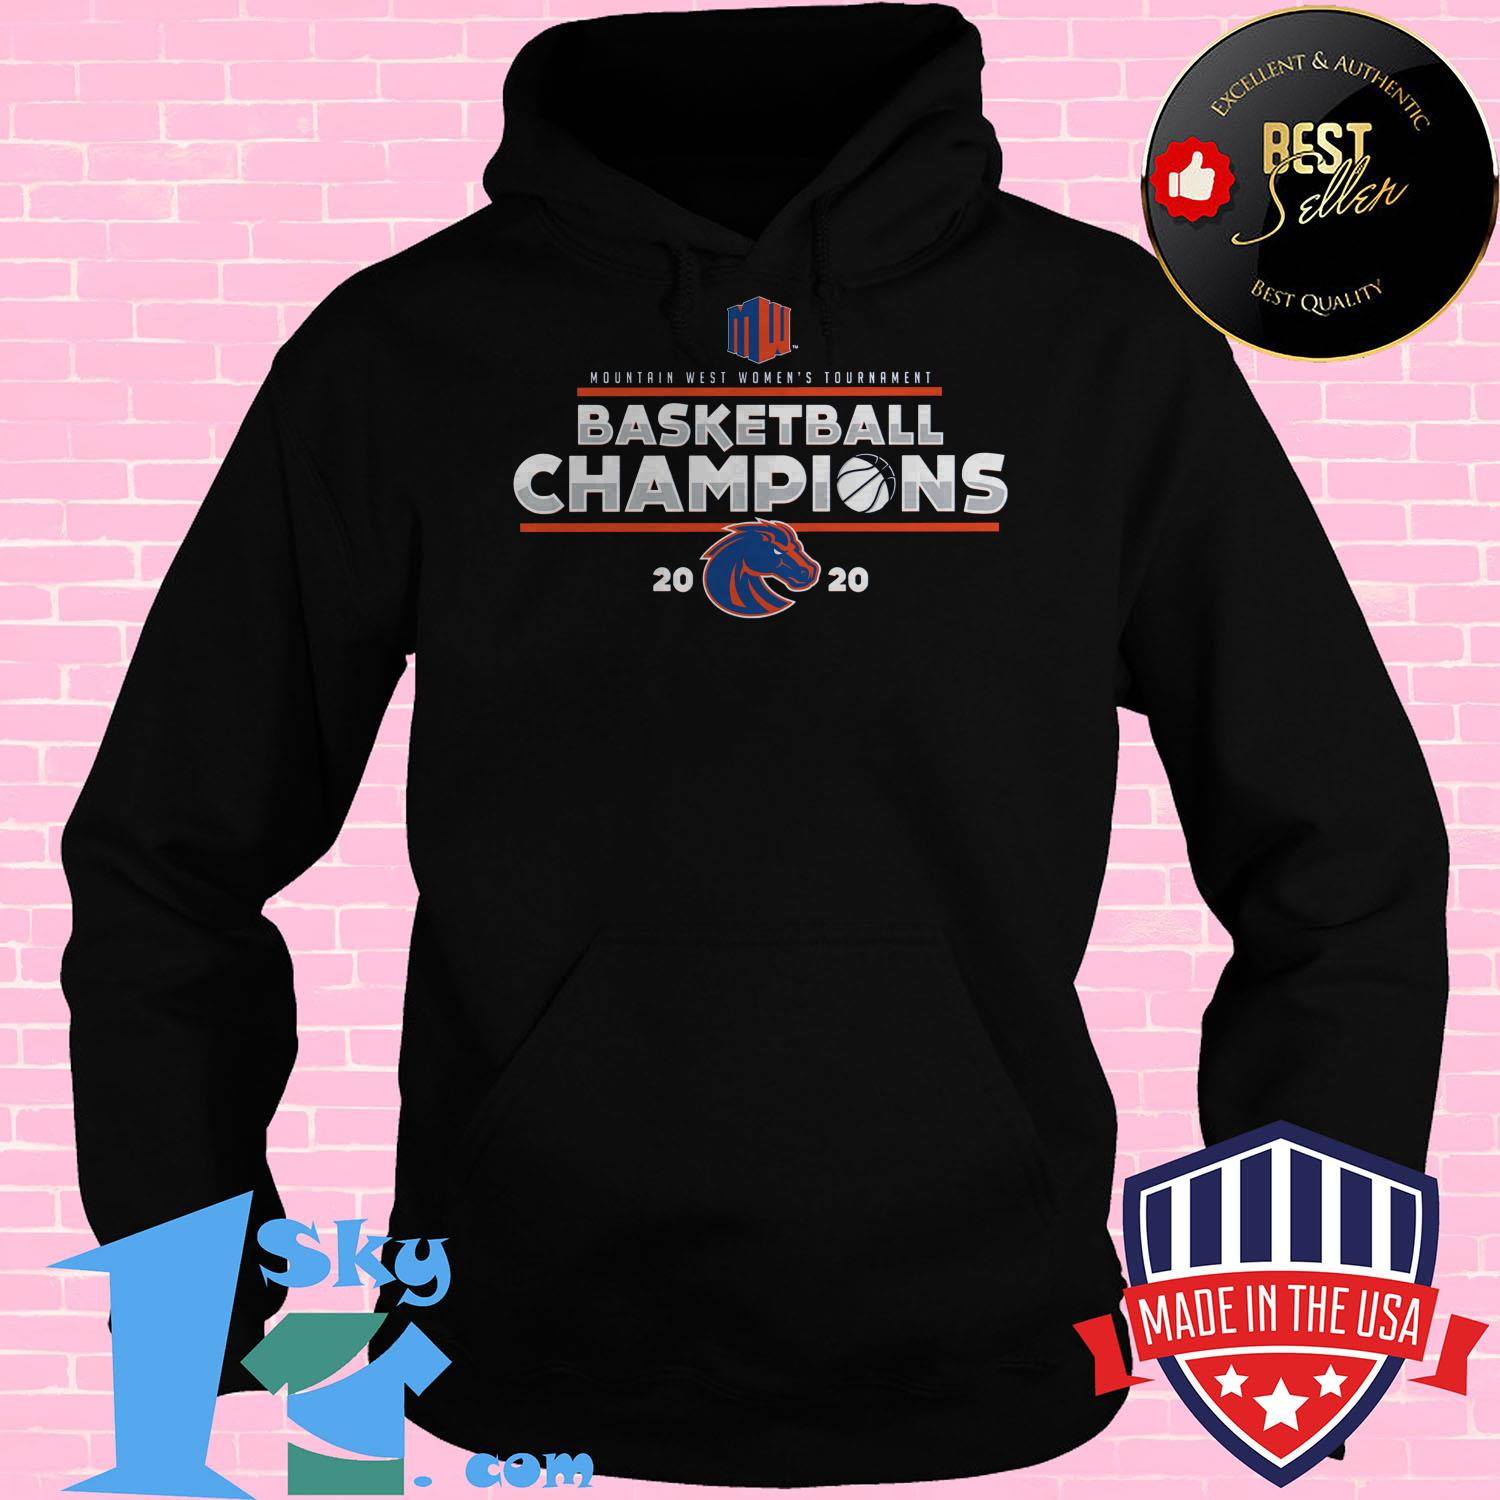 mountain west womens basketball conference tournament champions 2020 Hoodies - Mountain West Women's Basketball Conference Tournament Champions 2020 Shirt